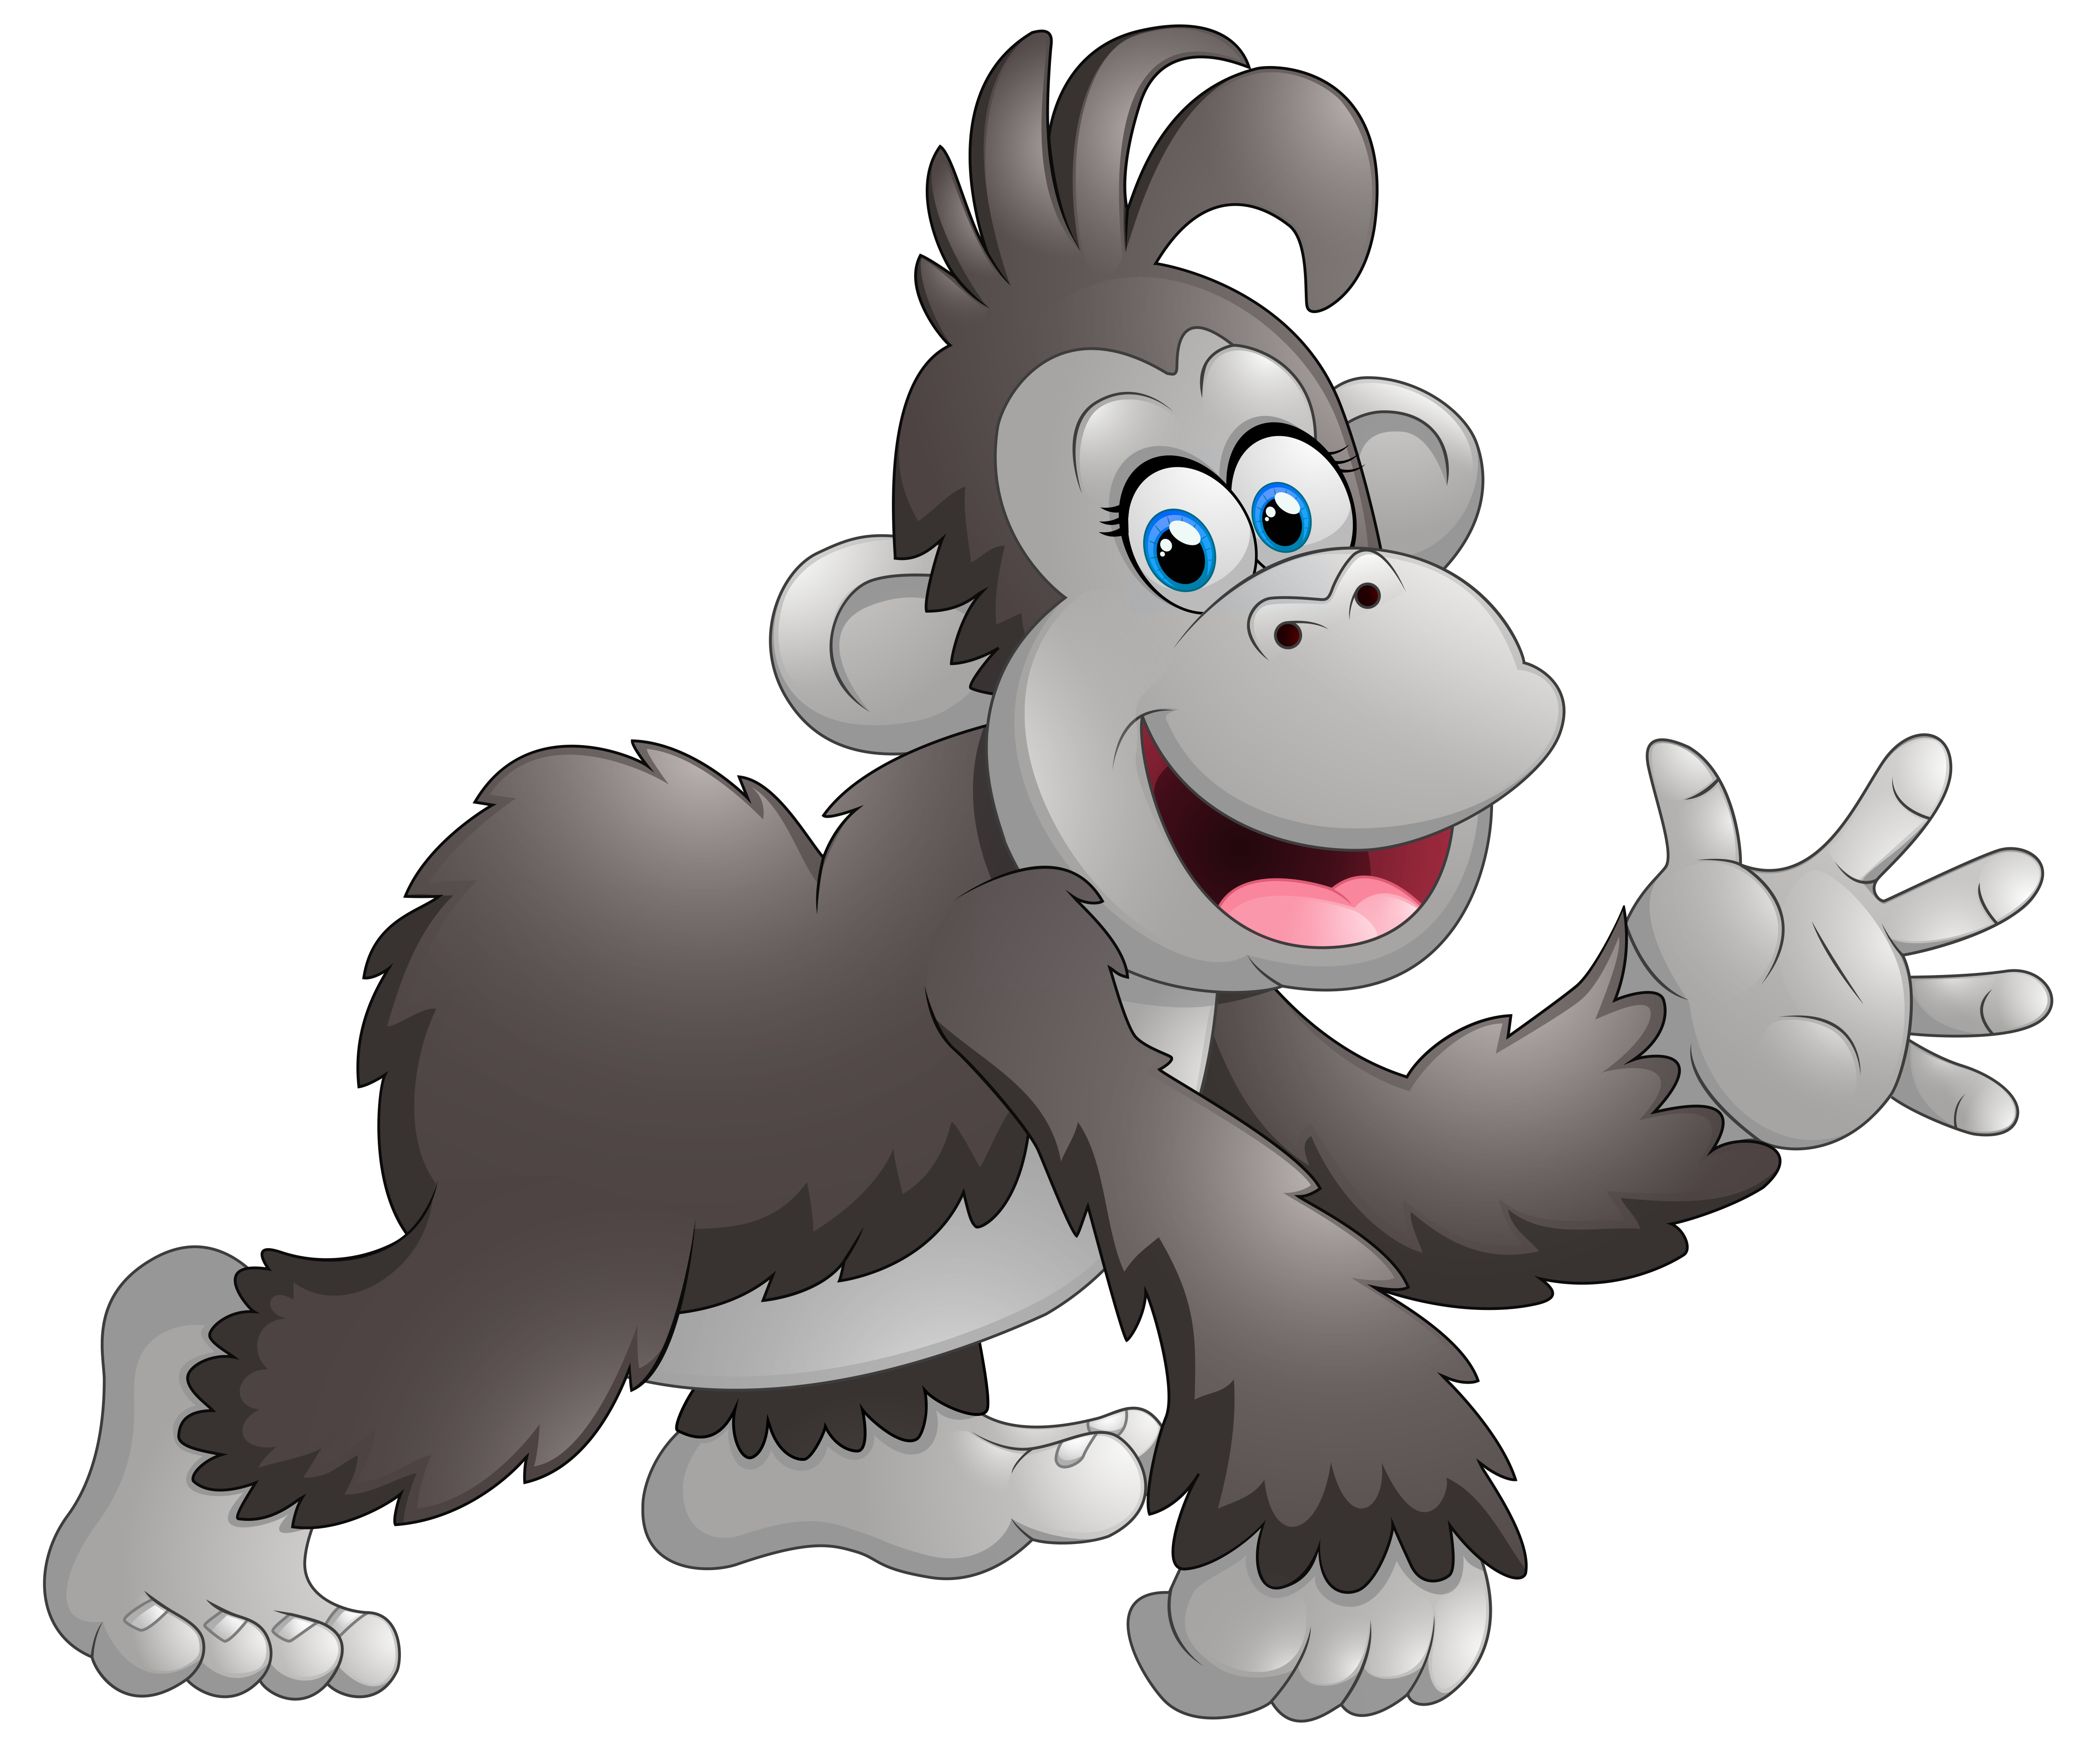 Monkey cartoon png. Happy clipart image gallery